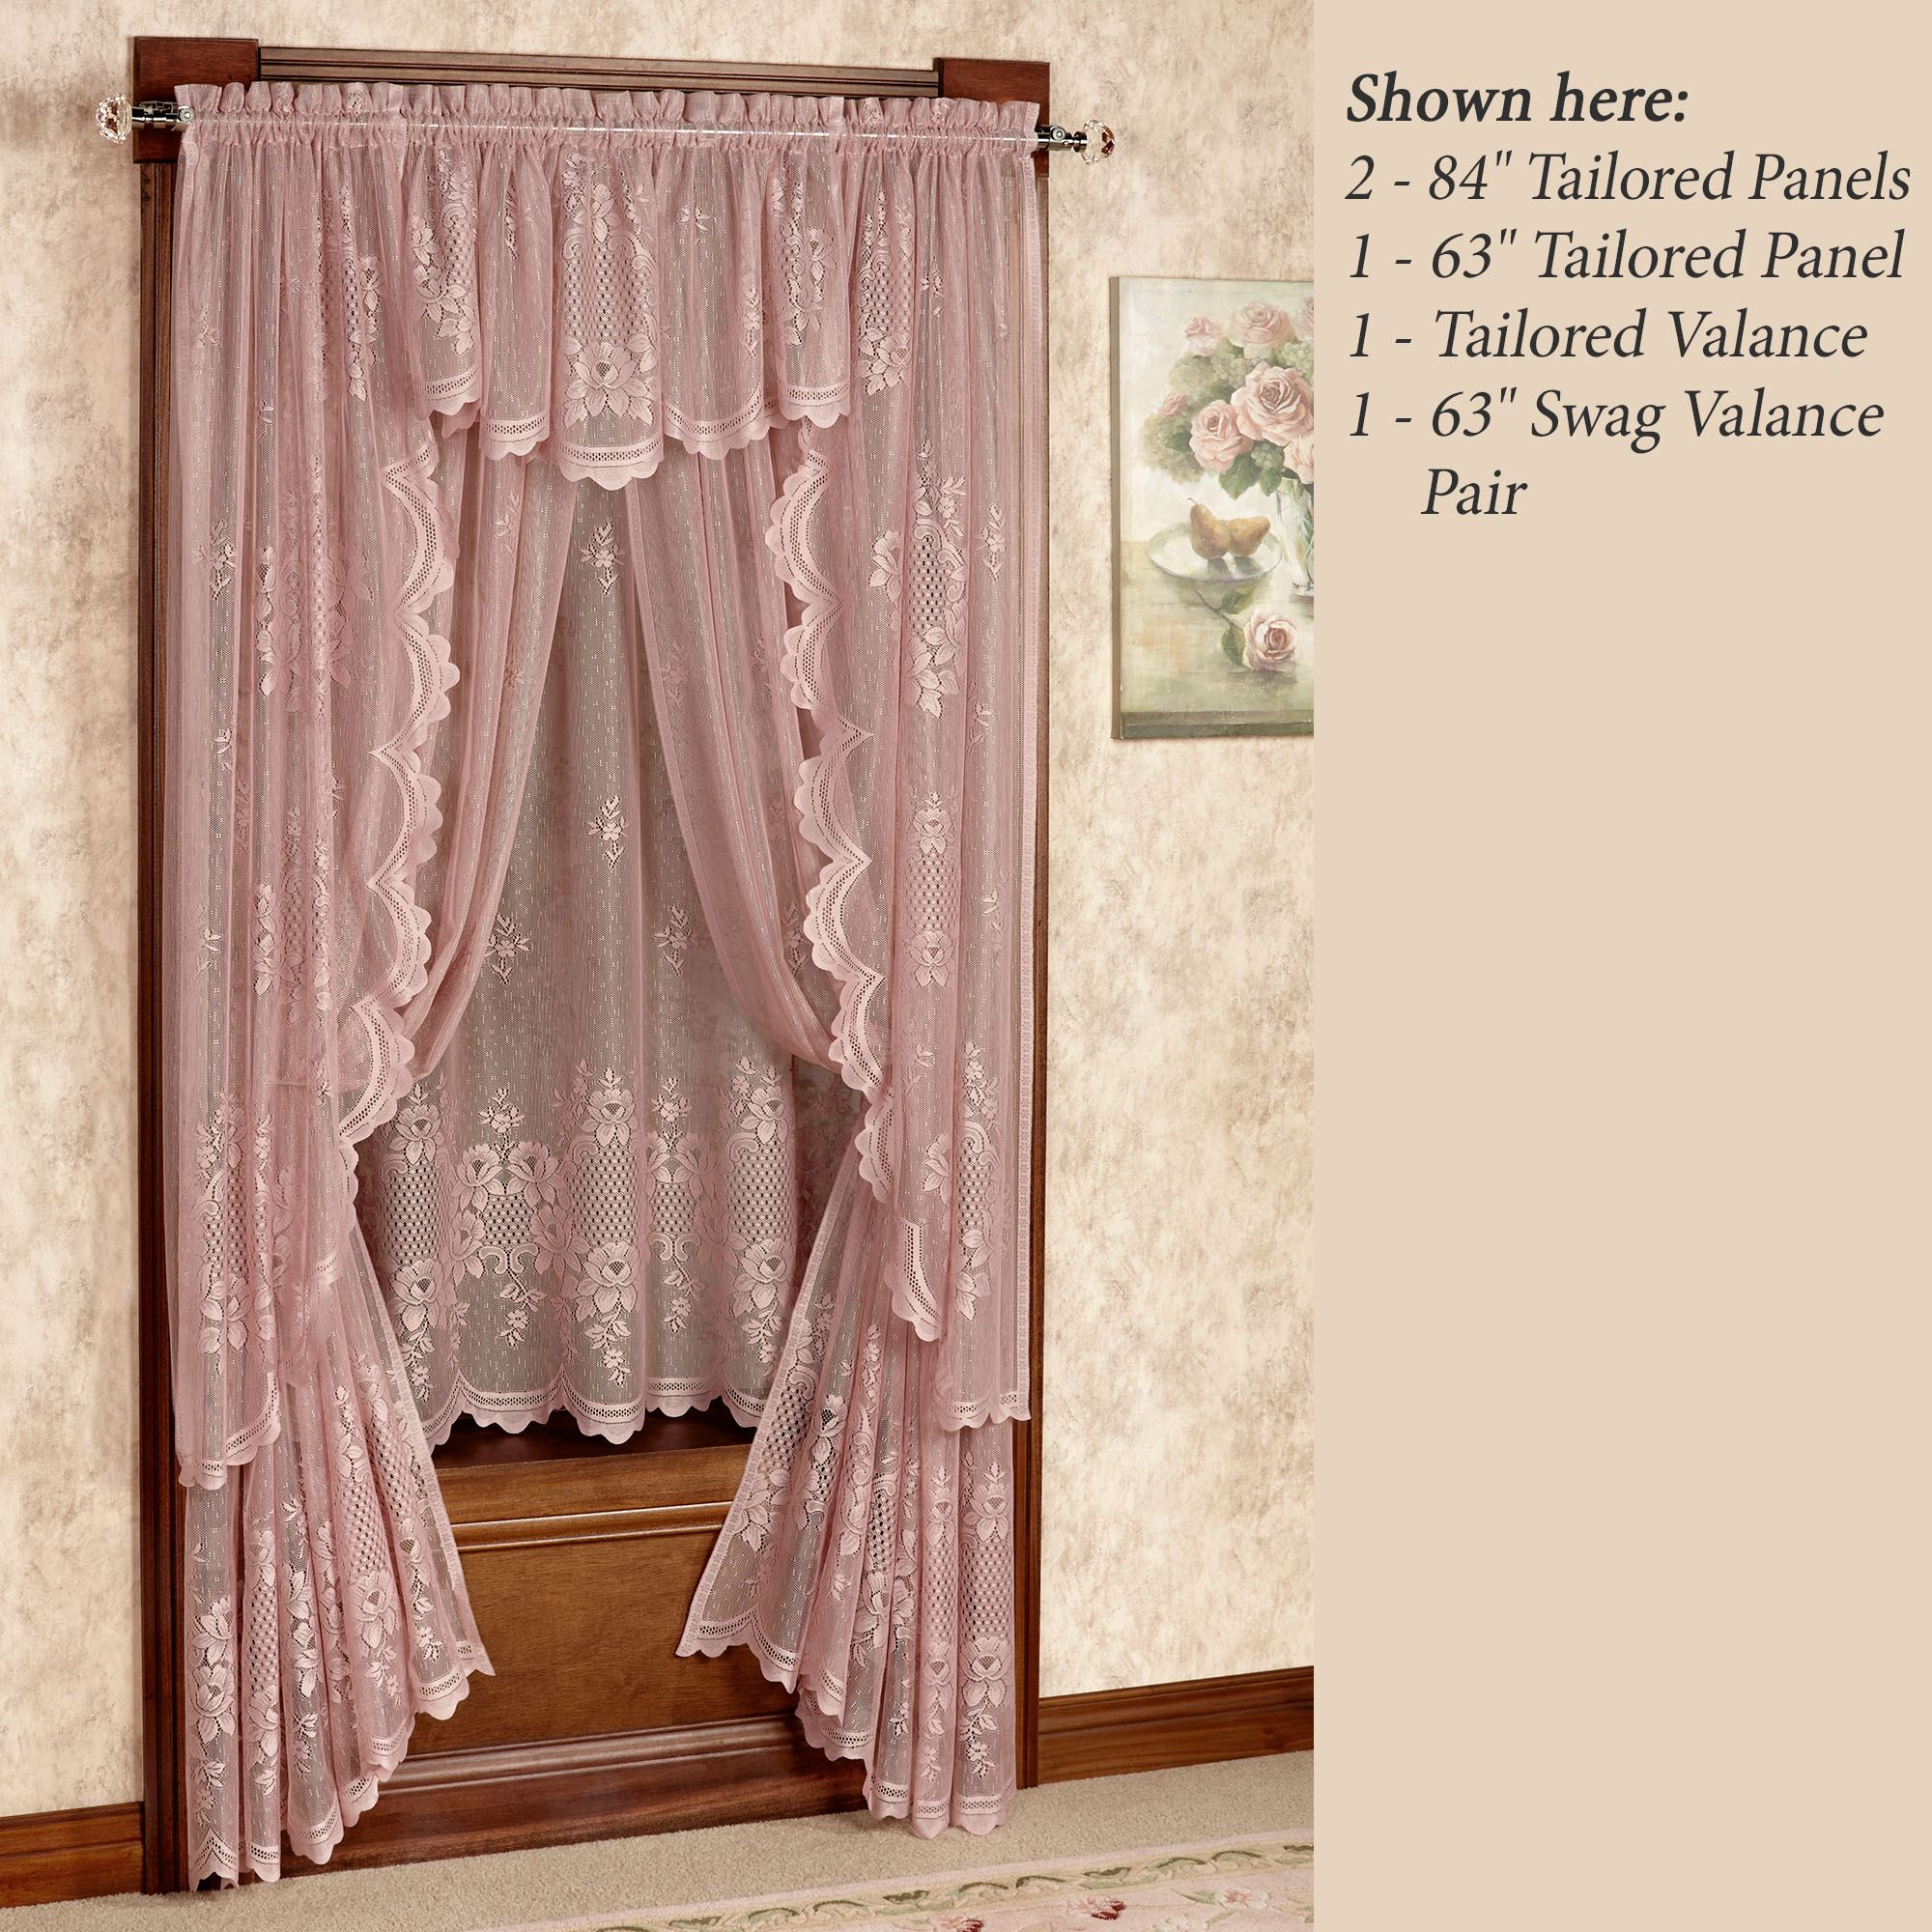 white waterproof curtains roses red fabric curtain ideas rose shower floral set best material